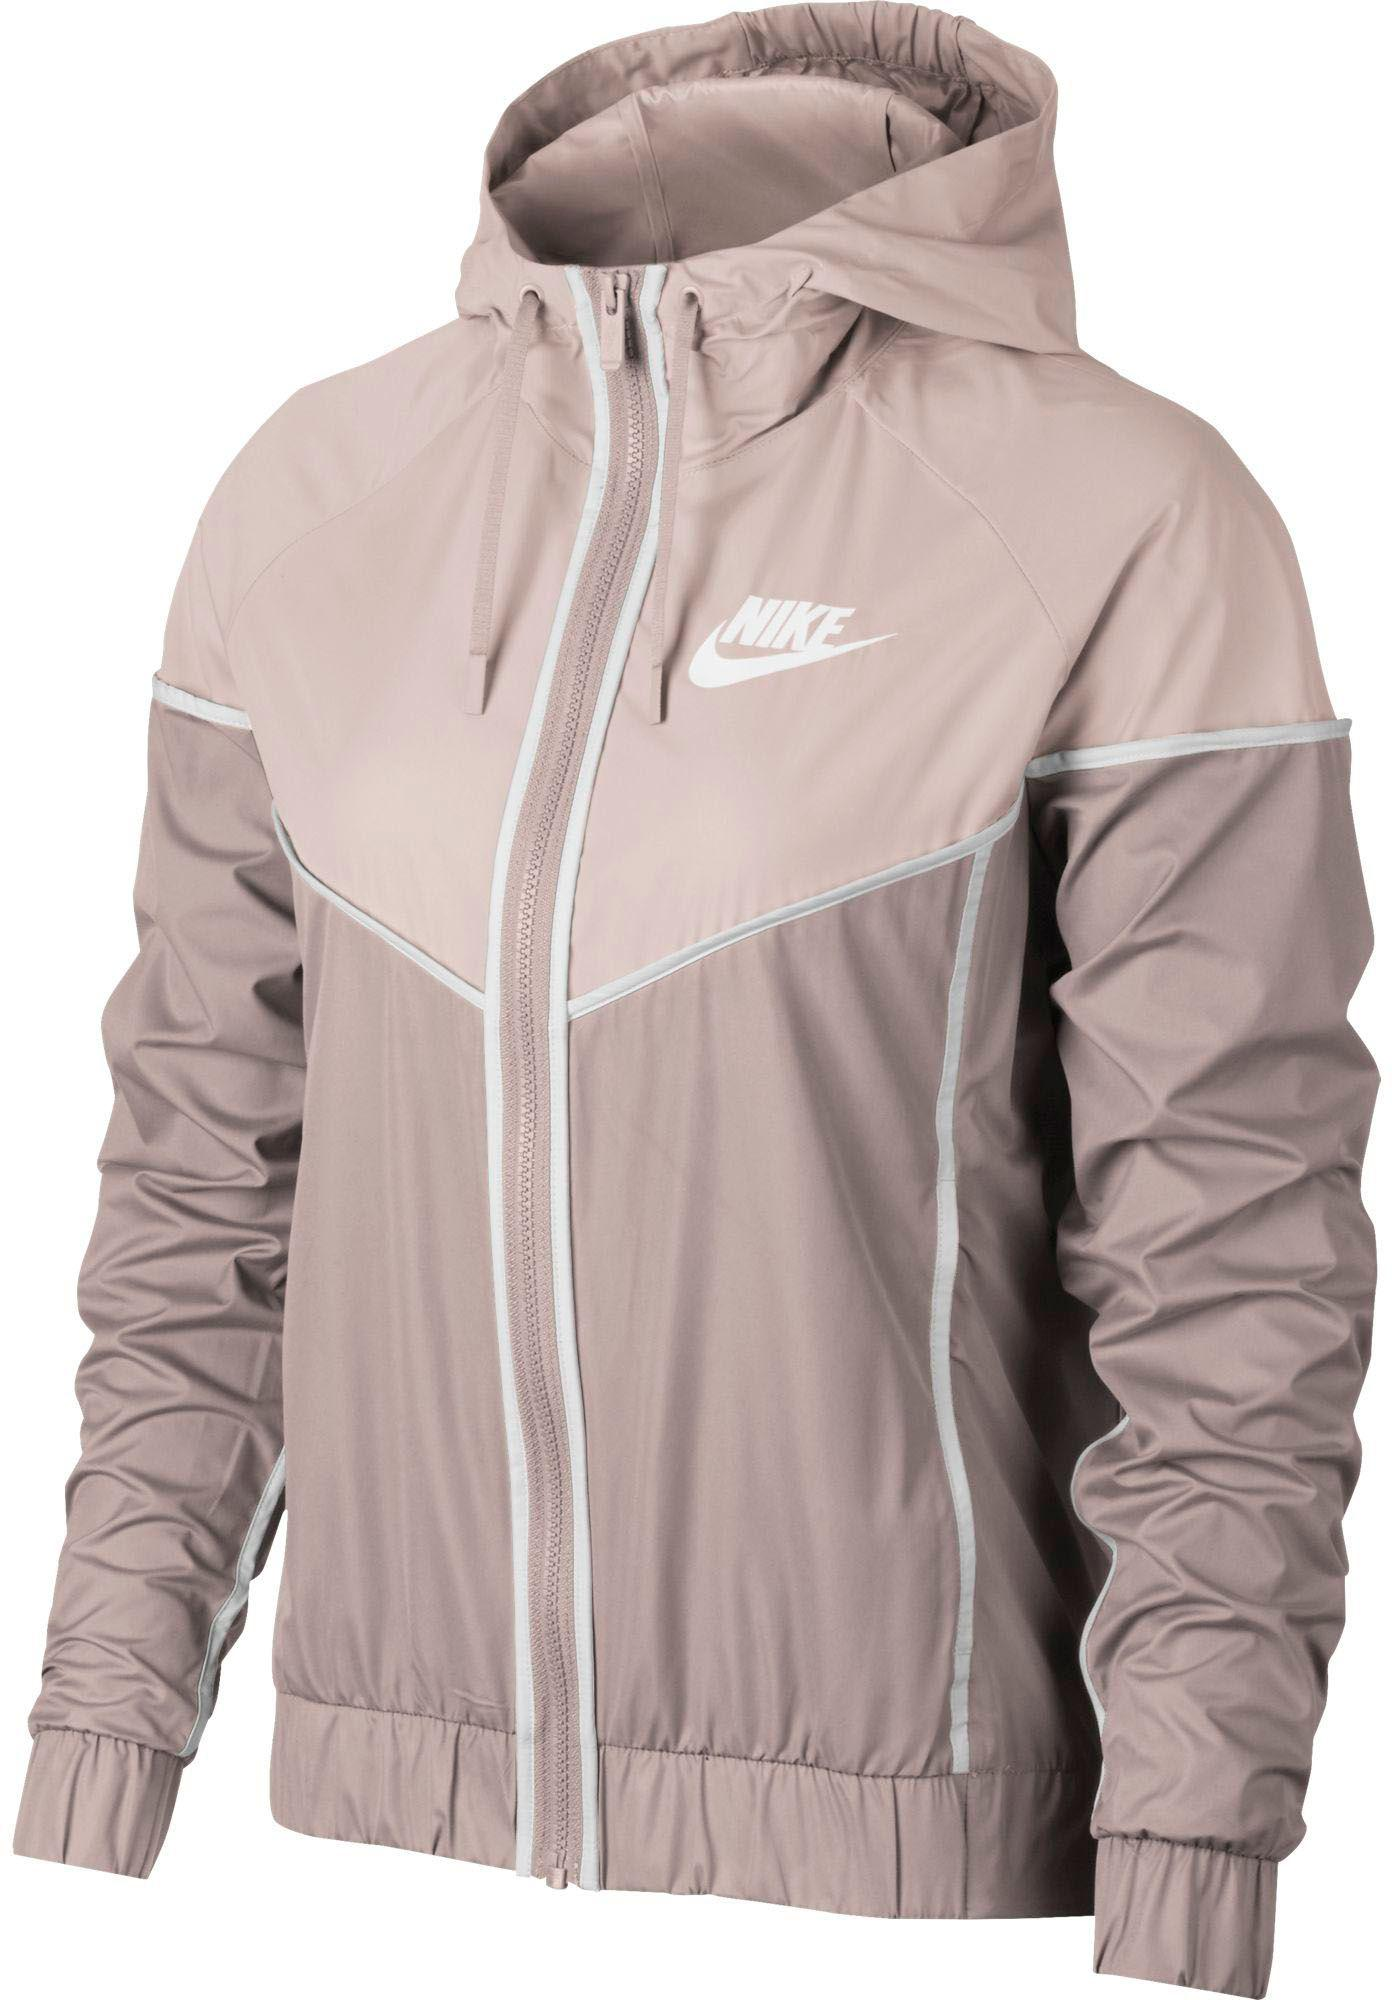 new arrivals 23628 b706e Lyst - Nike Sportswear Windrunner Jacket in Pink